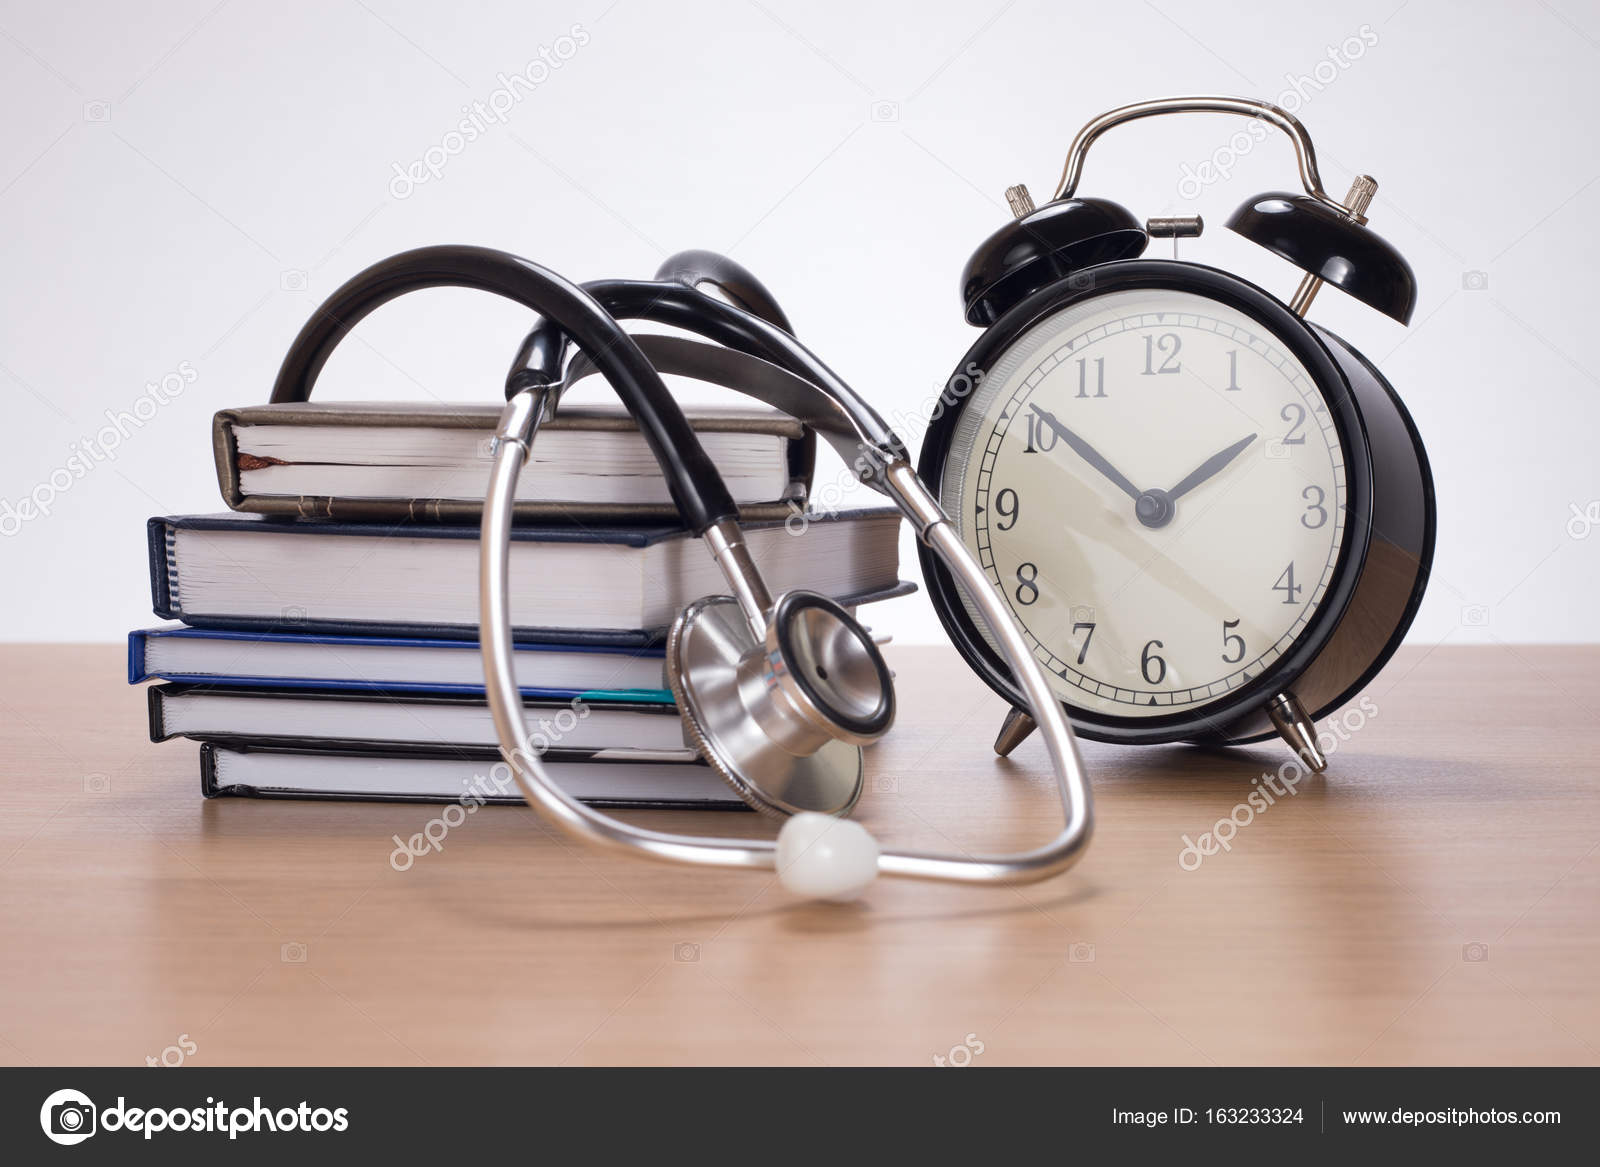 stethoscope among pile of planners and clock stock photo